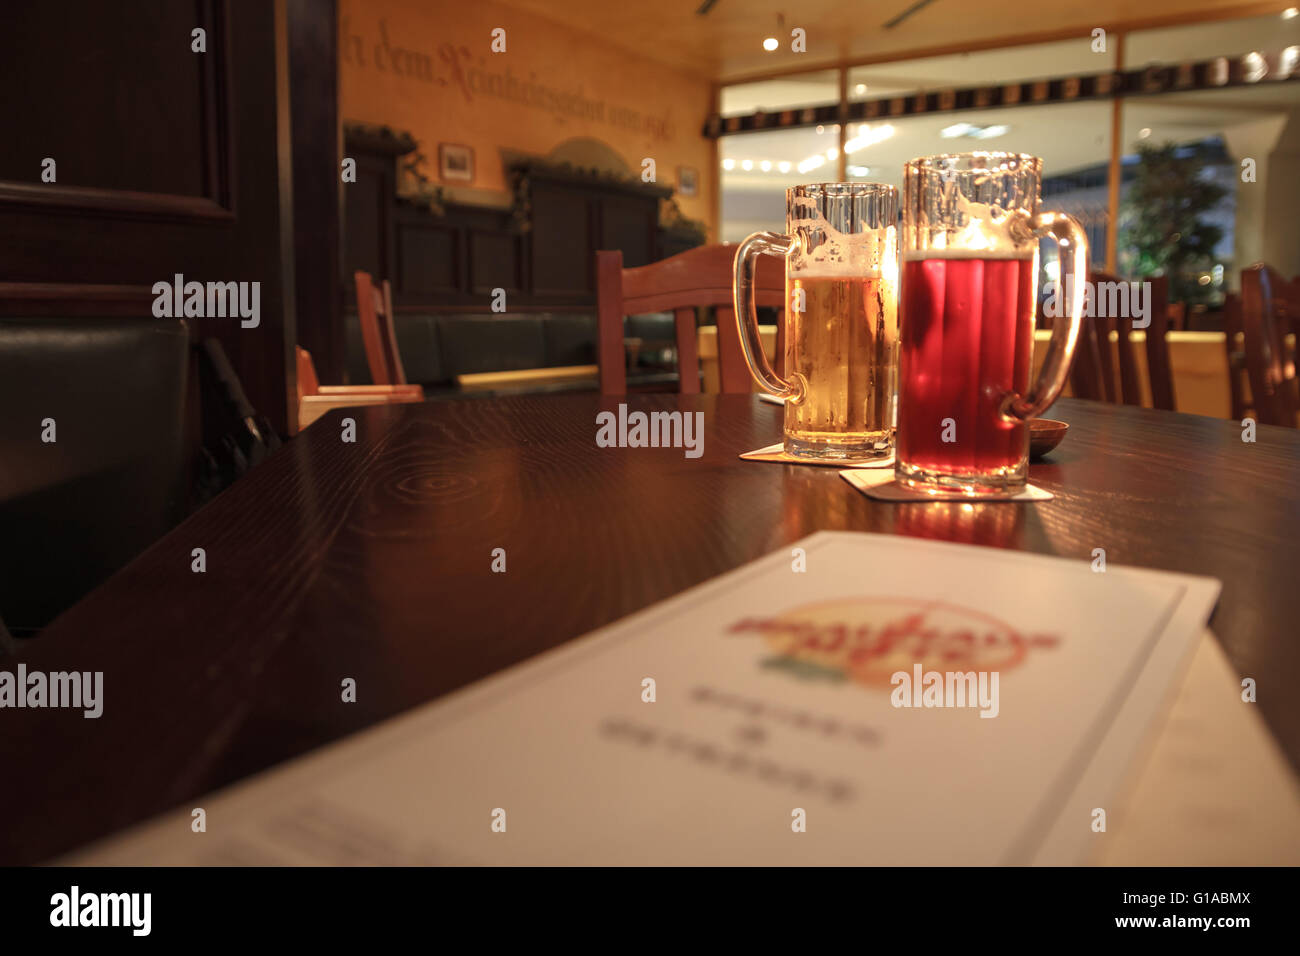 2 beer mugs on a romantic table in a restaurant in Berlin Germany - Stock Image